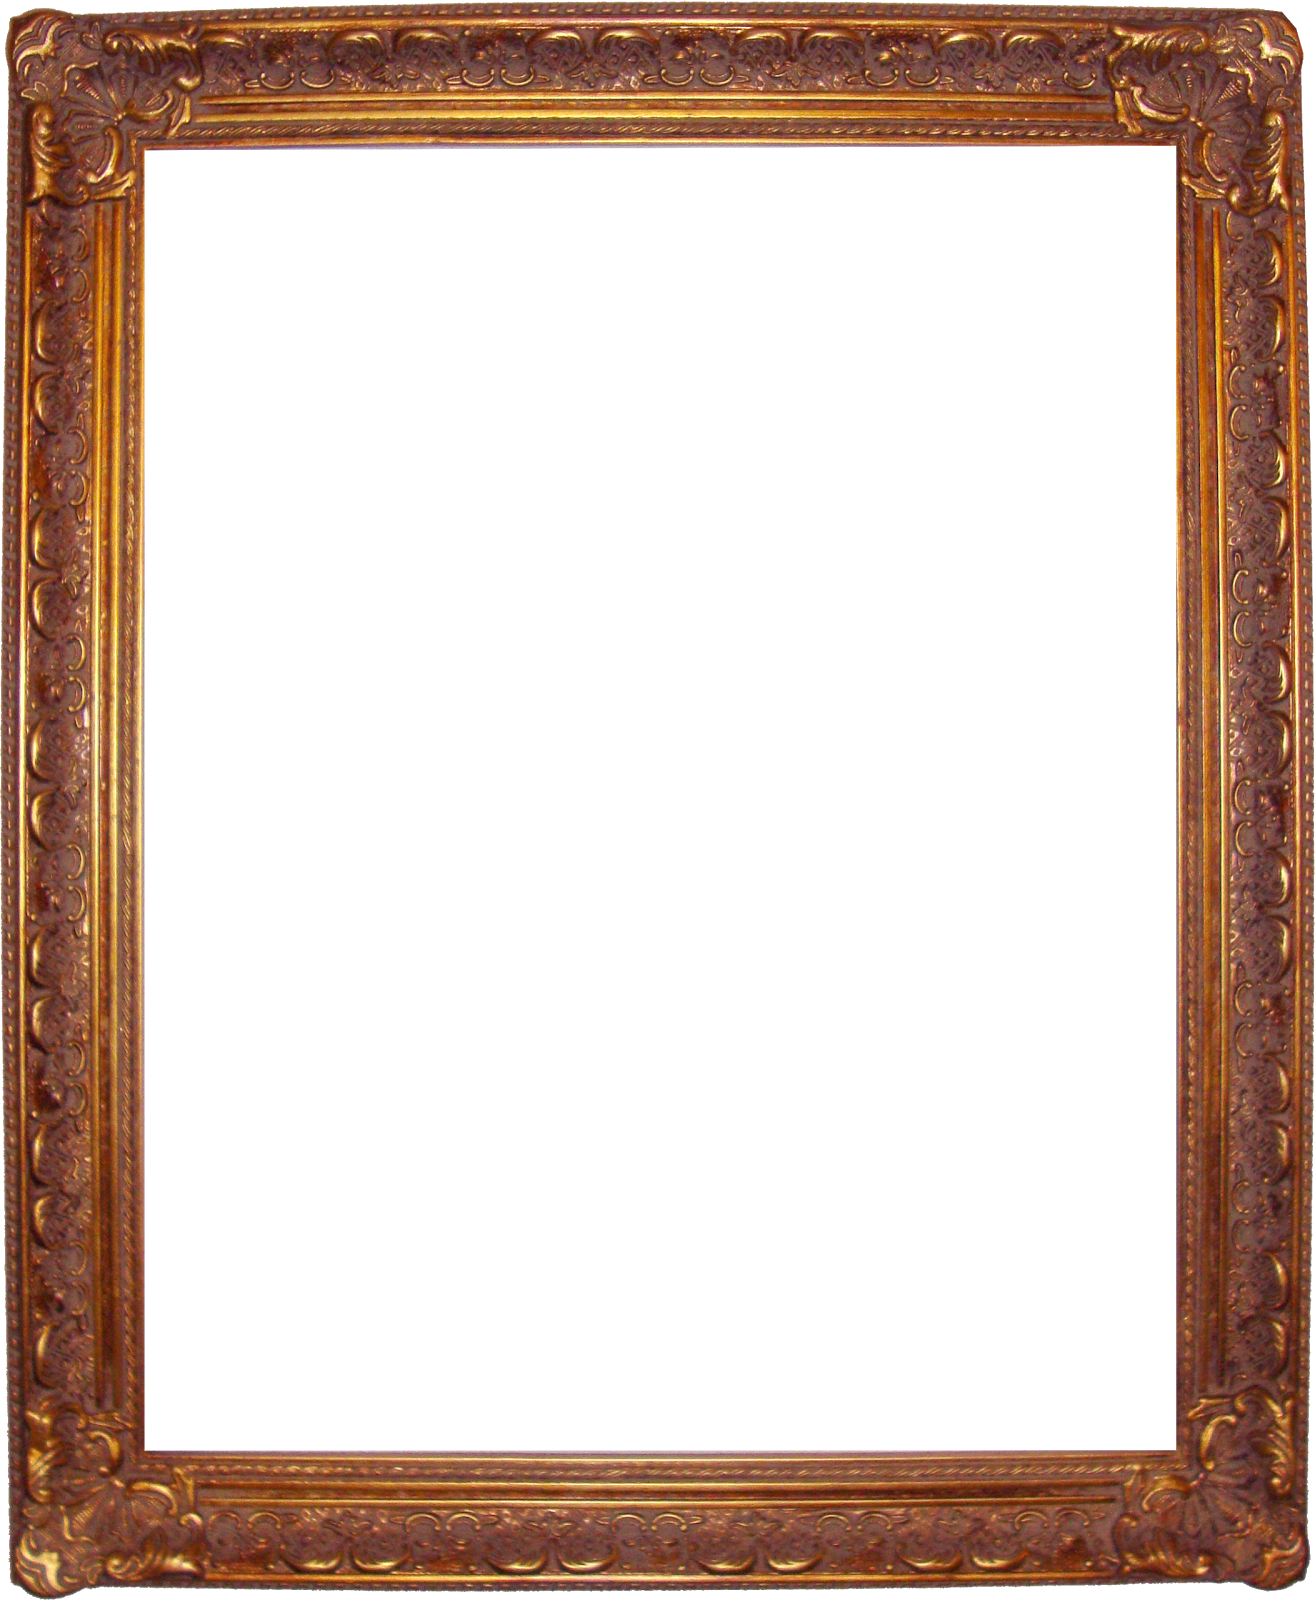 Vintage Frame Png Available In Different Size #30398 - Free Icons ...